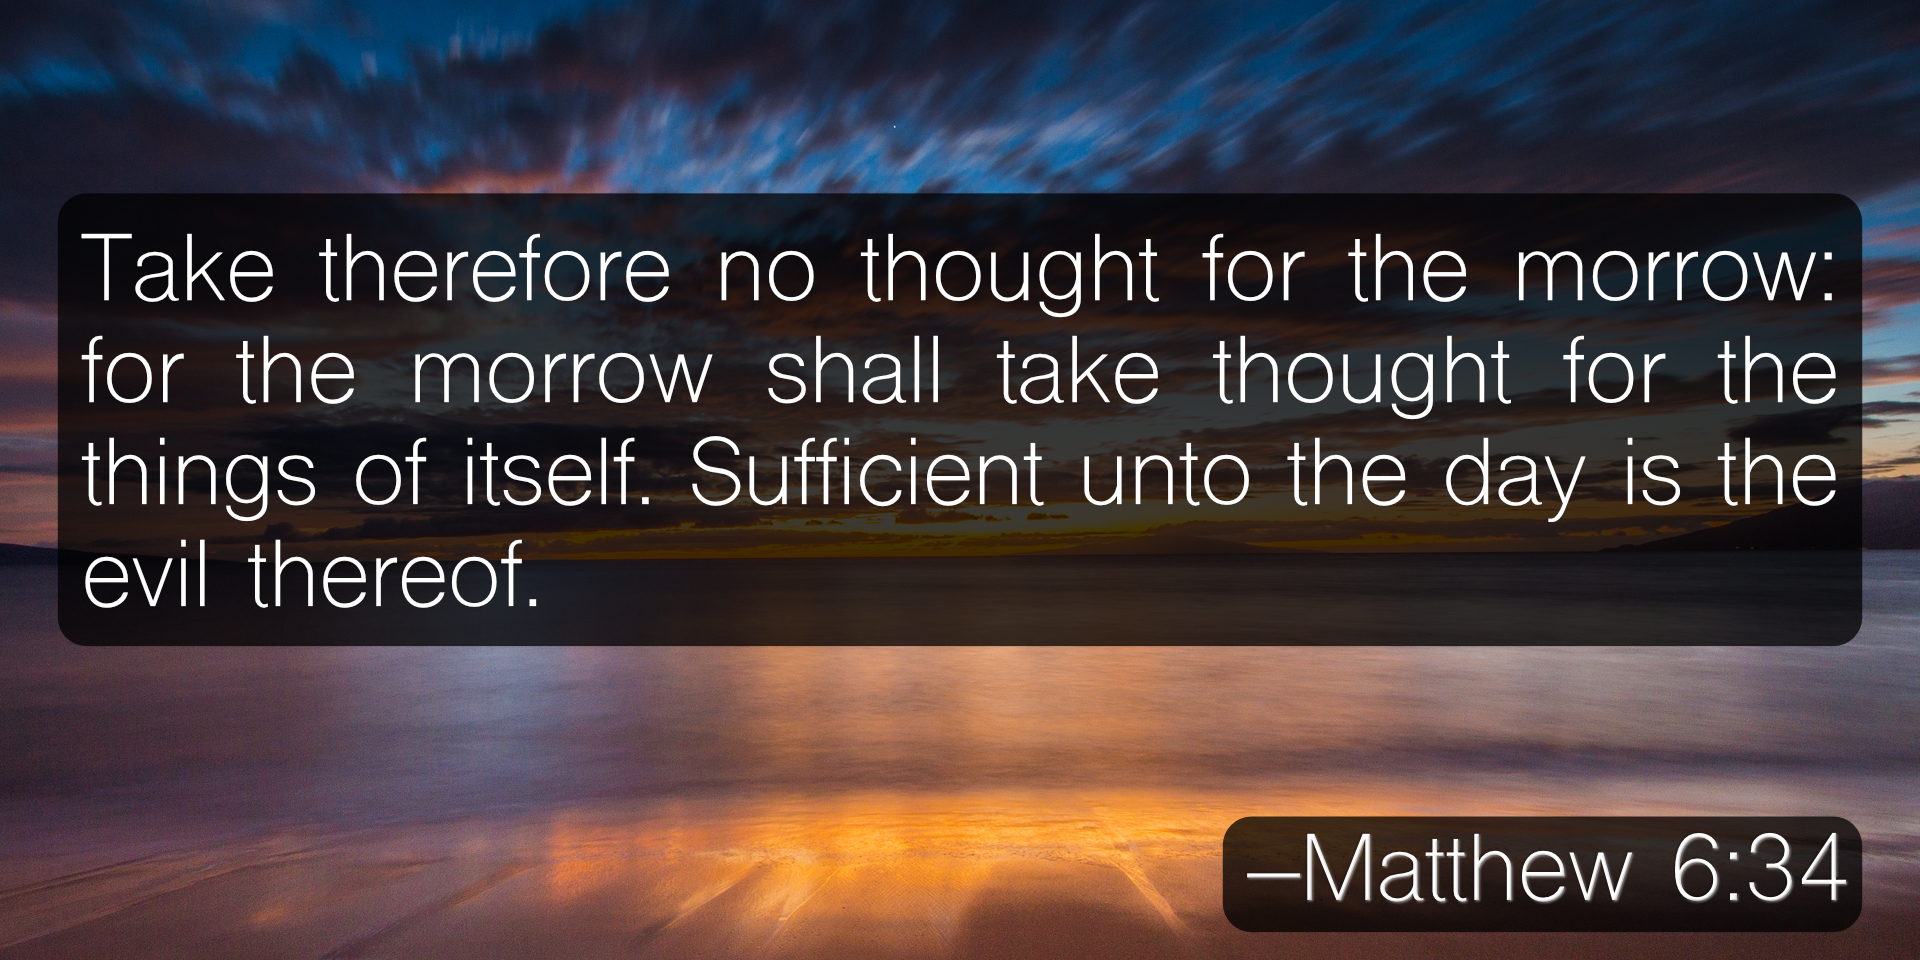 Take therefore no thought for the morrow: for the morrow shall take thought for the things of itself. Sufficient unto the day is the evil thereof. –Matthew 6:34